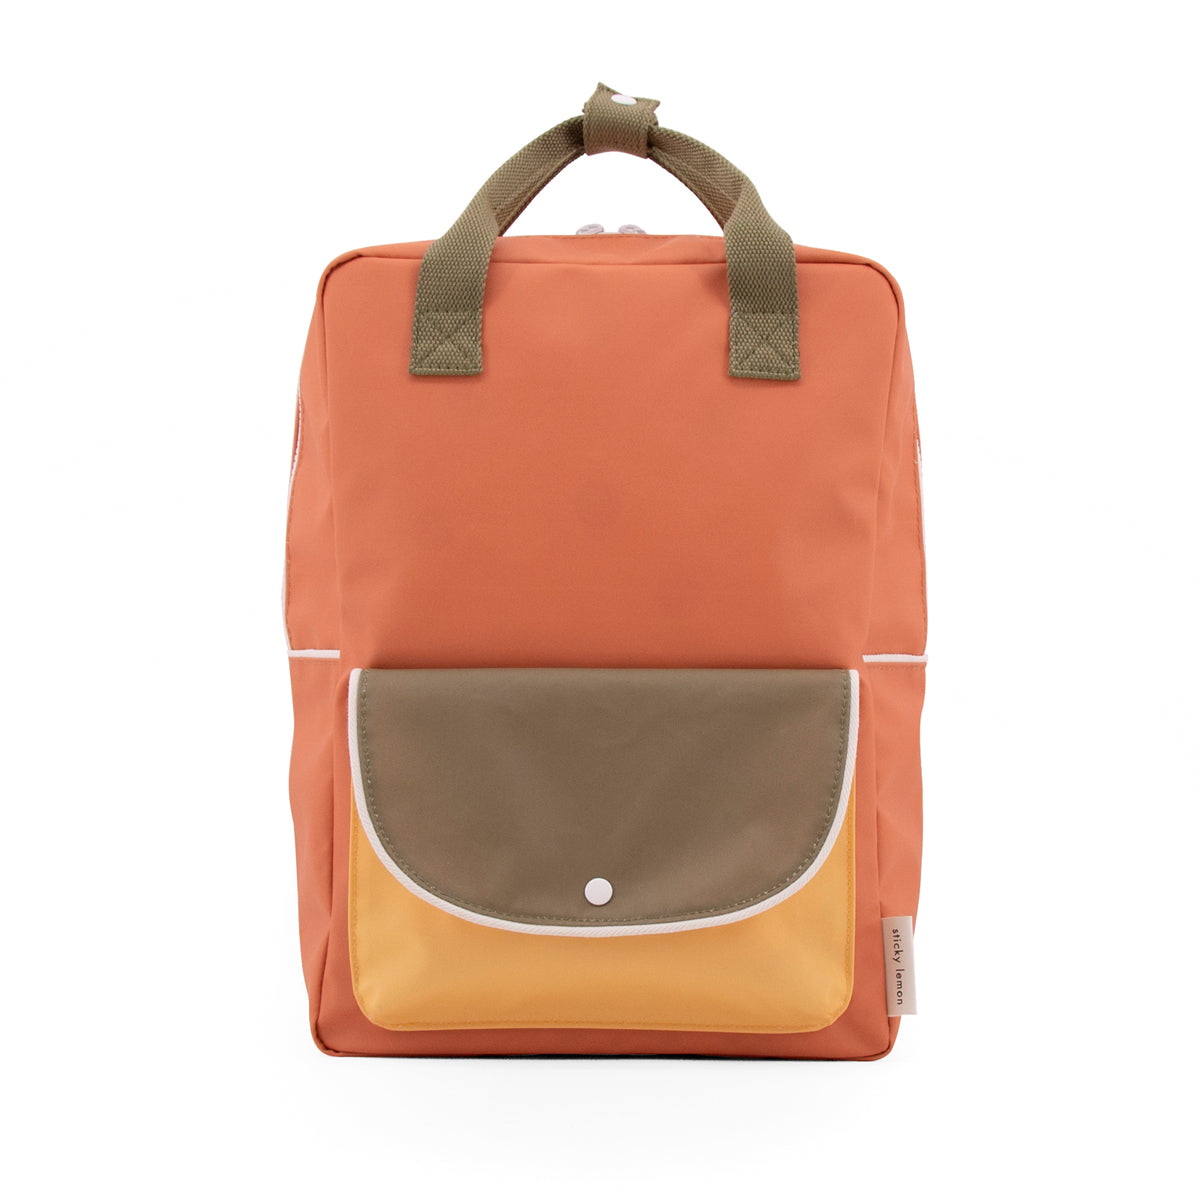 Sticky Lemon Large backpack wanderer faded orange + seventies green + retro yellow